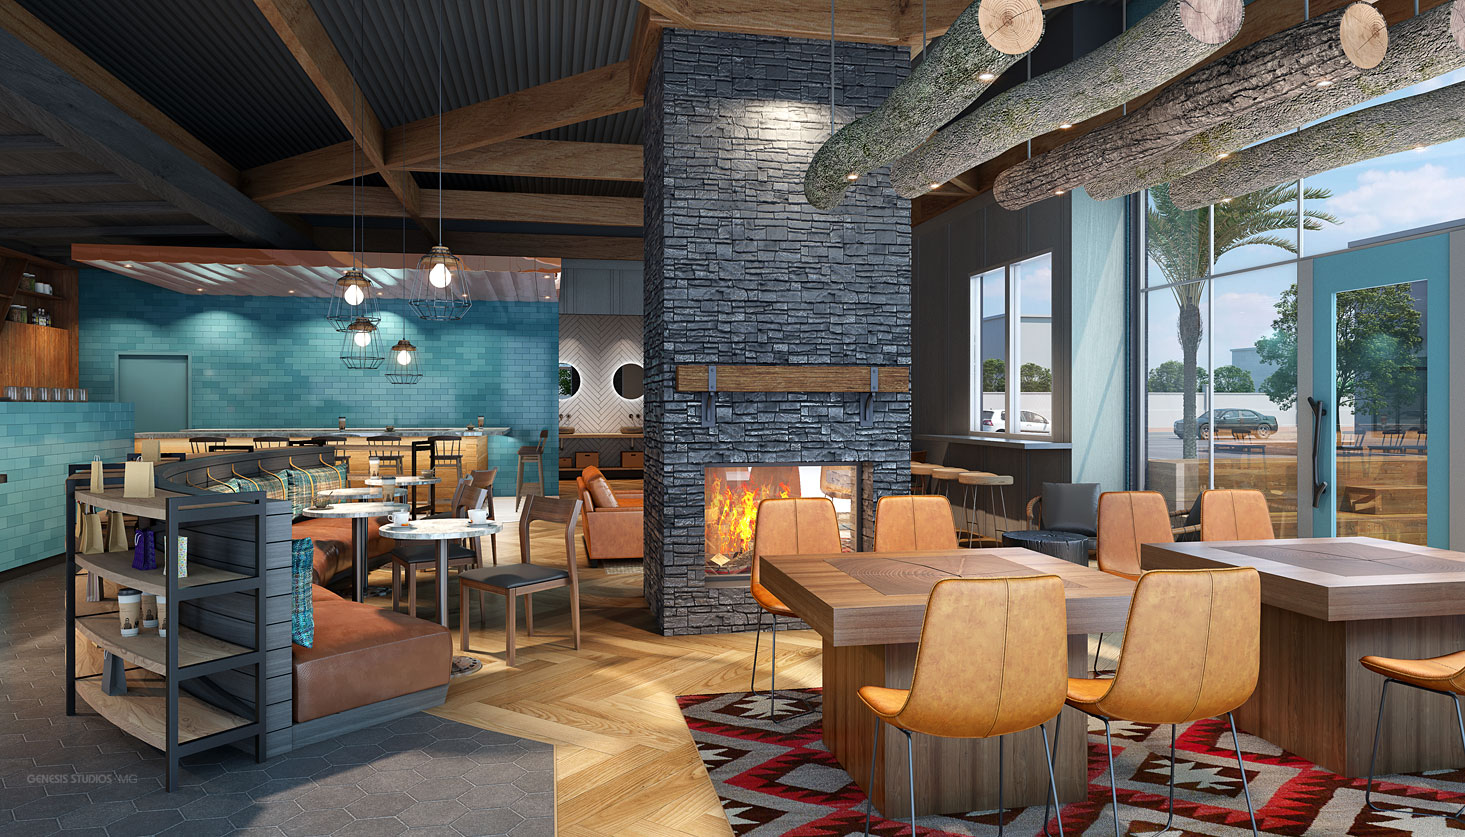 717210 Digital Photorealistic Architectural Renderings of Caribou Coffee Interior Fireplace for Shea Design